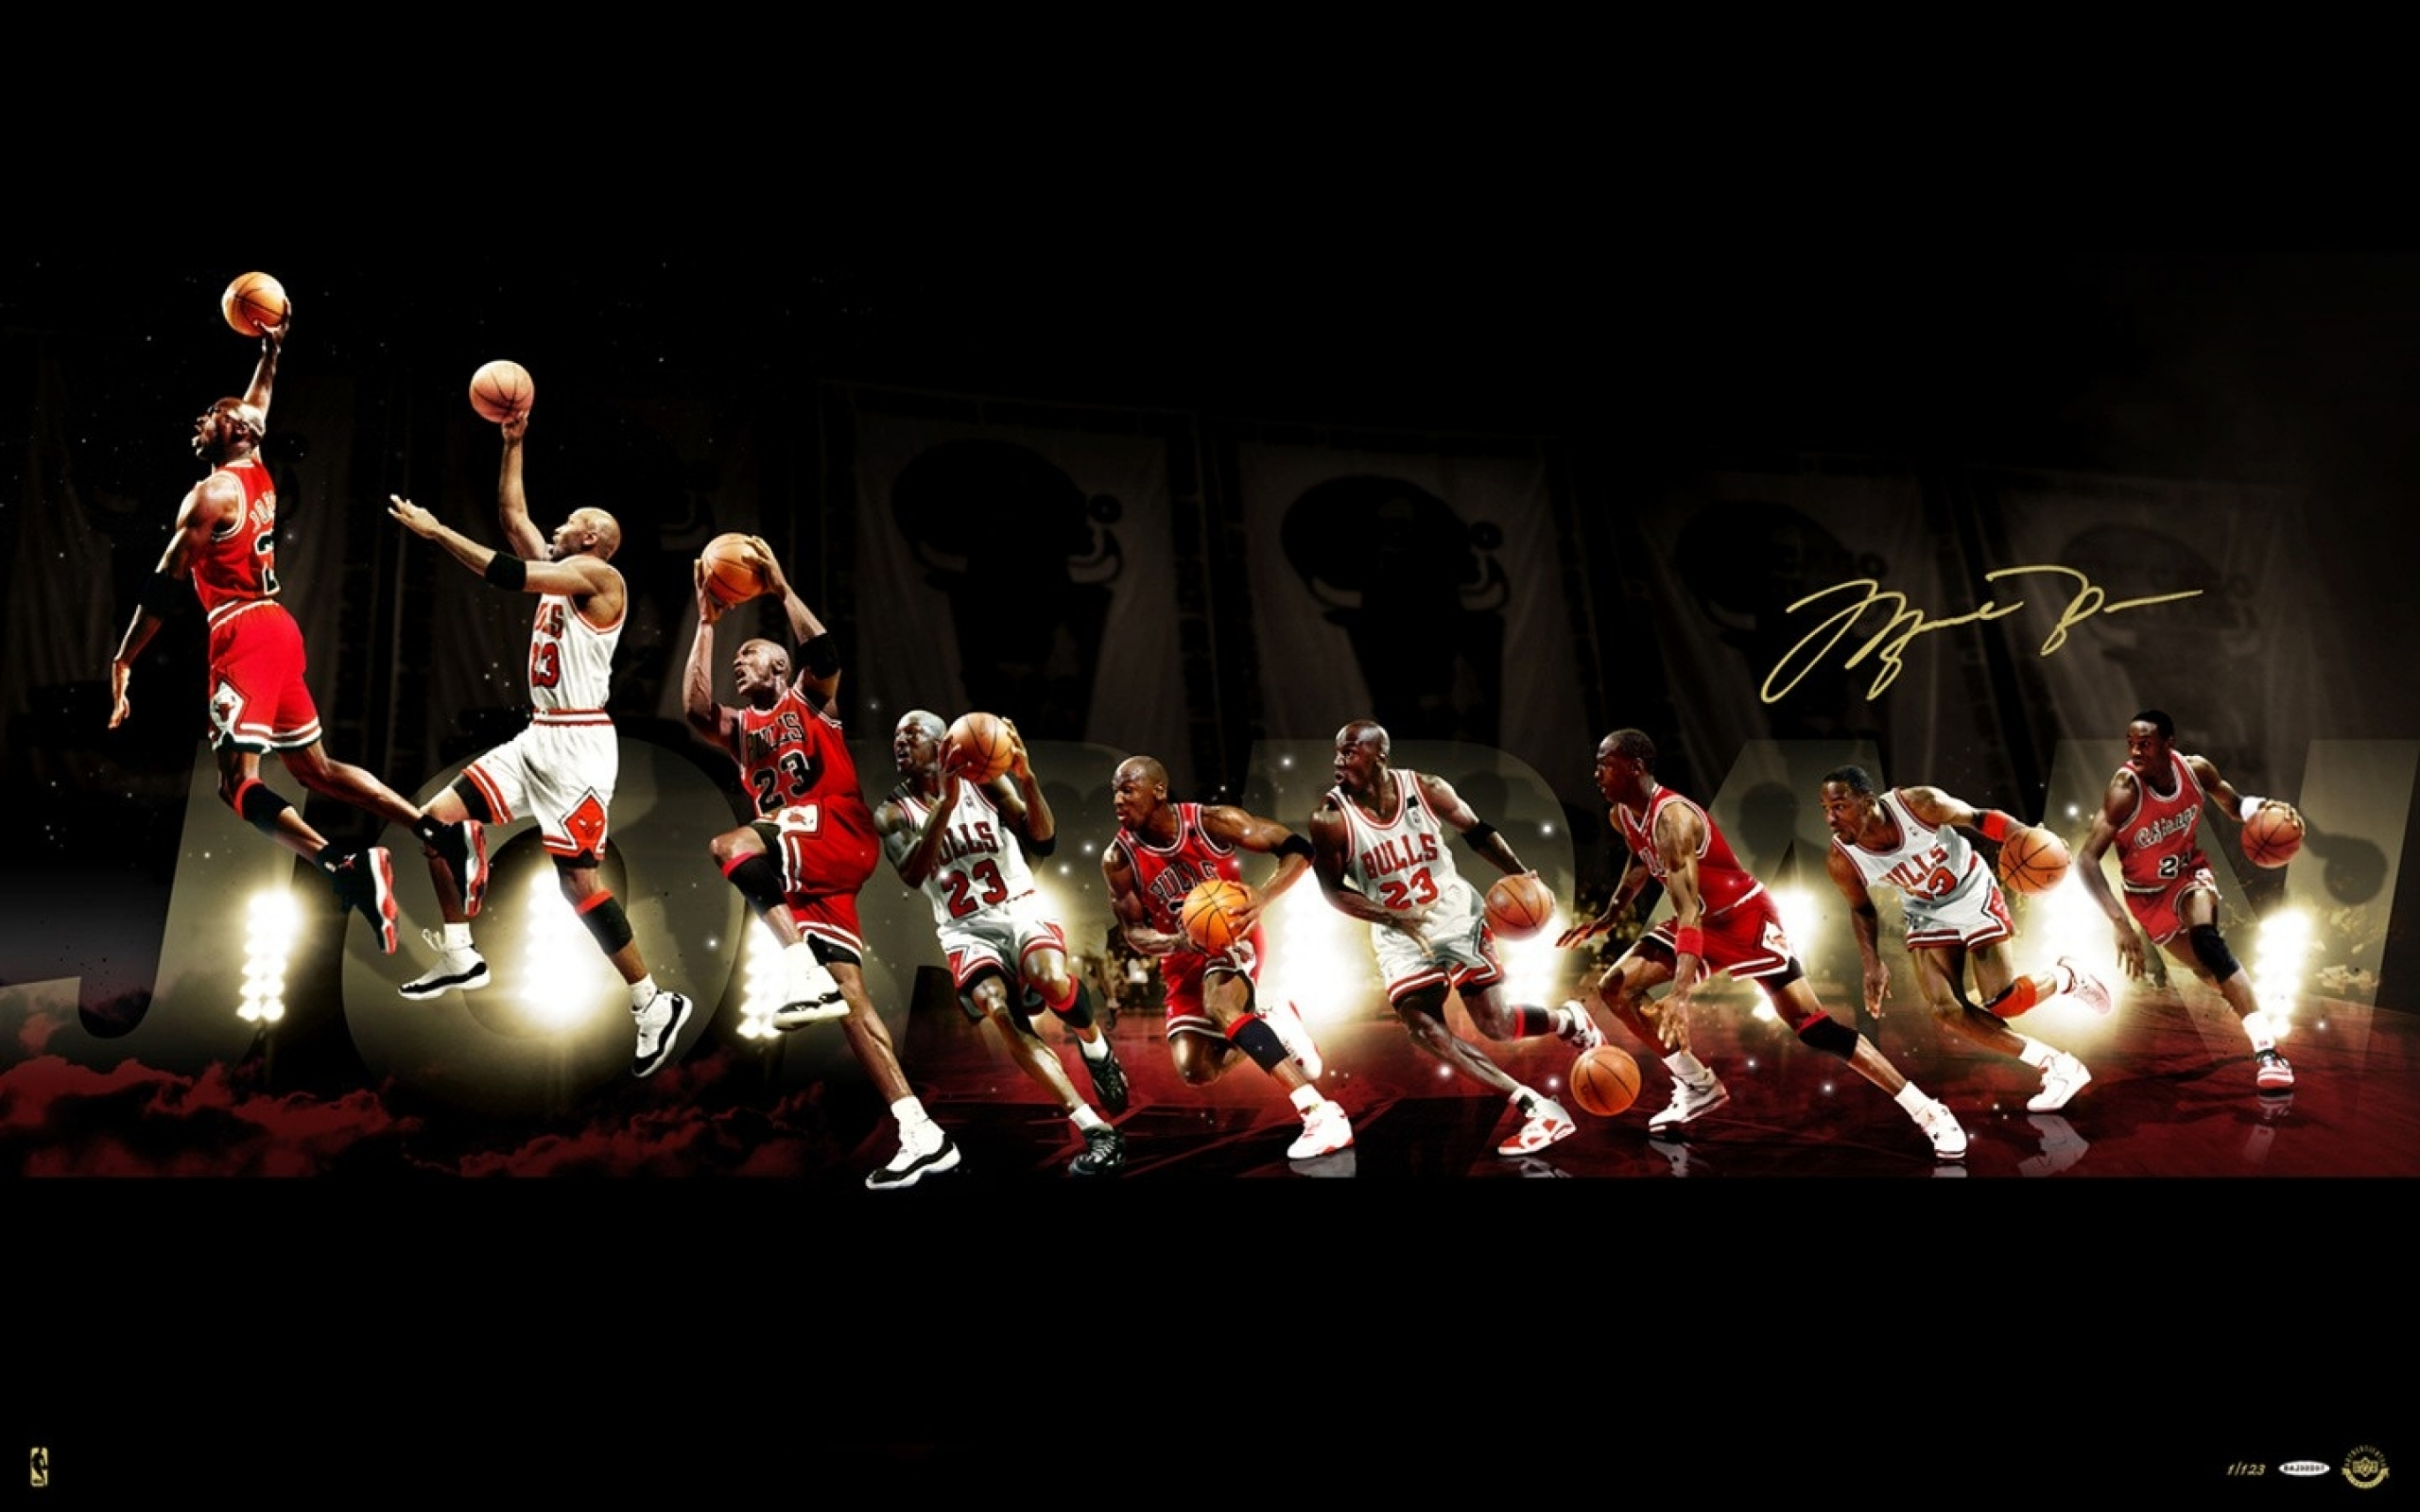 Michael Jordan Pc Wallpaper: Michael Jordan Wallpapers, Pictures, Images